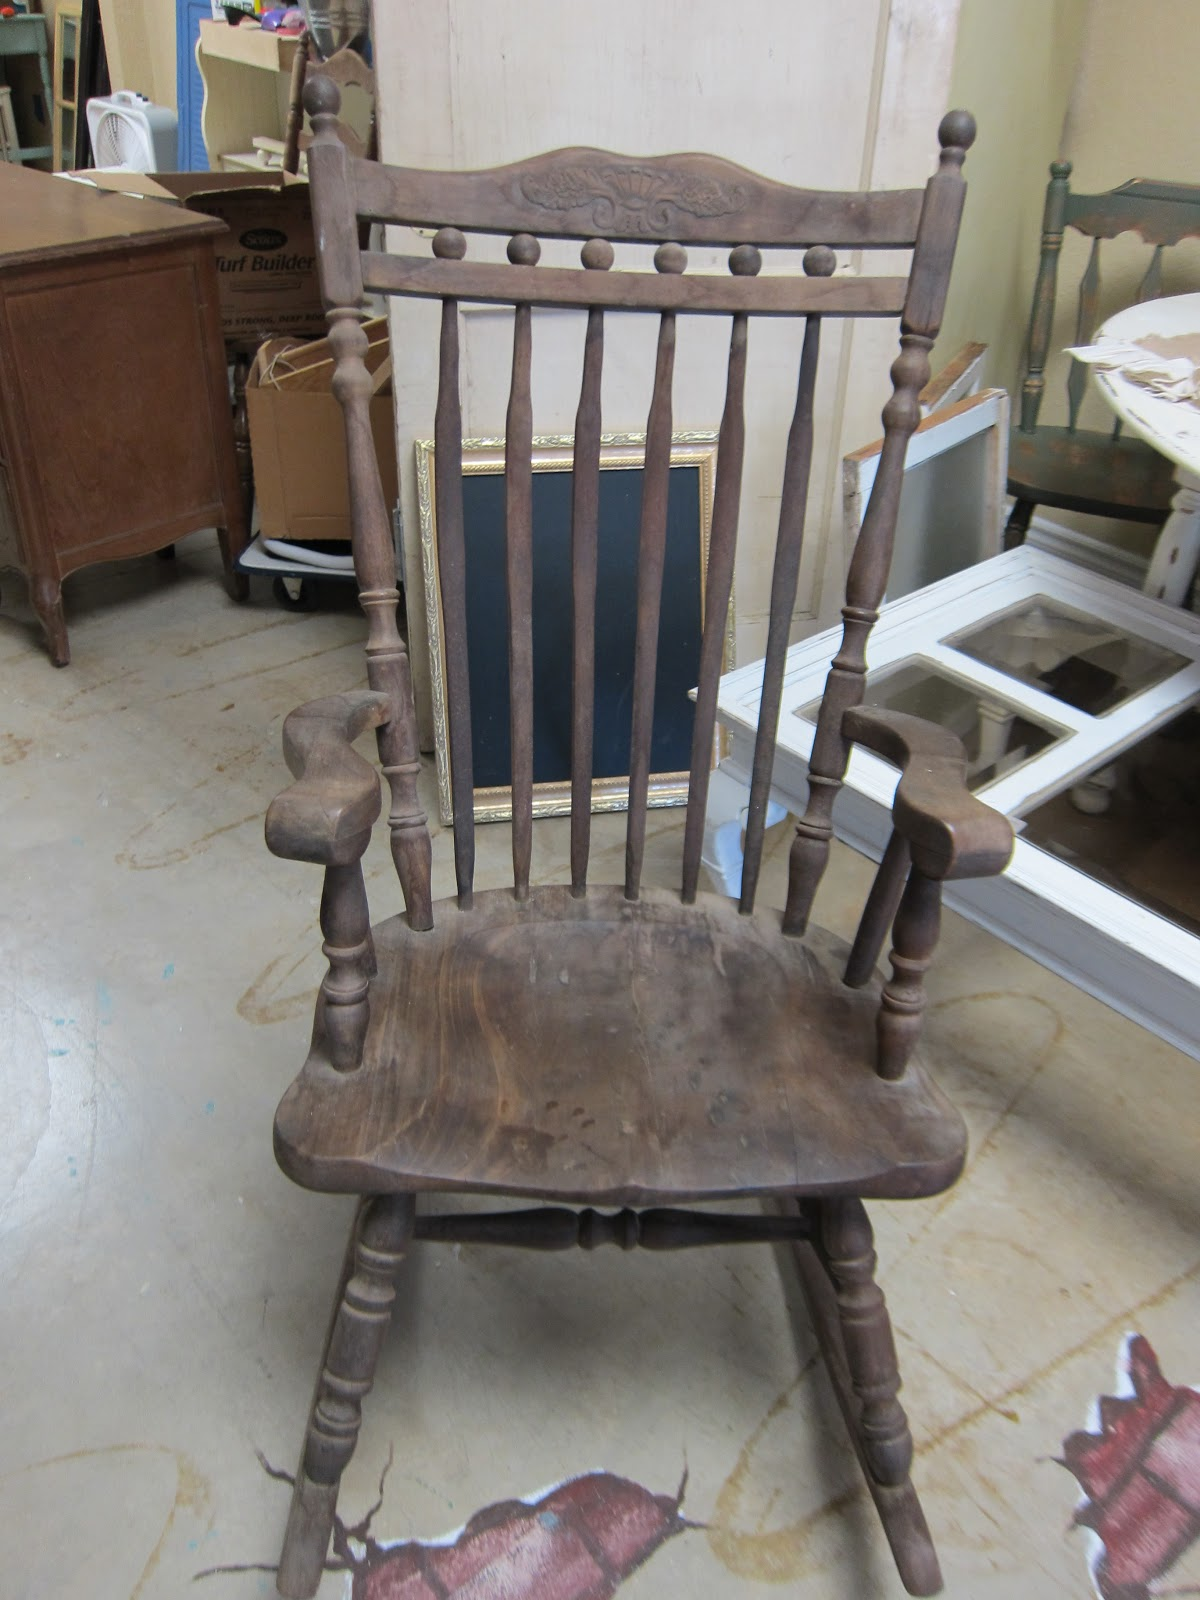 Shabby chic painted rocking chairs - Chairs Antique Chairs Contemporary Chairs Rocking Chairs You Pick The Chair The Paint Color And Bring Your Favorite Upholstery We Do All The Work